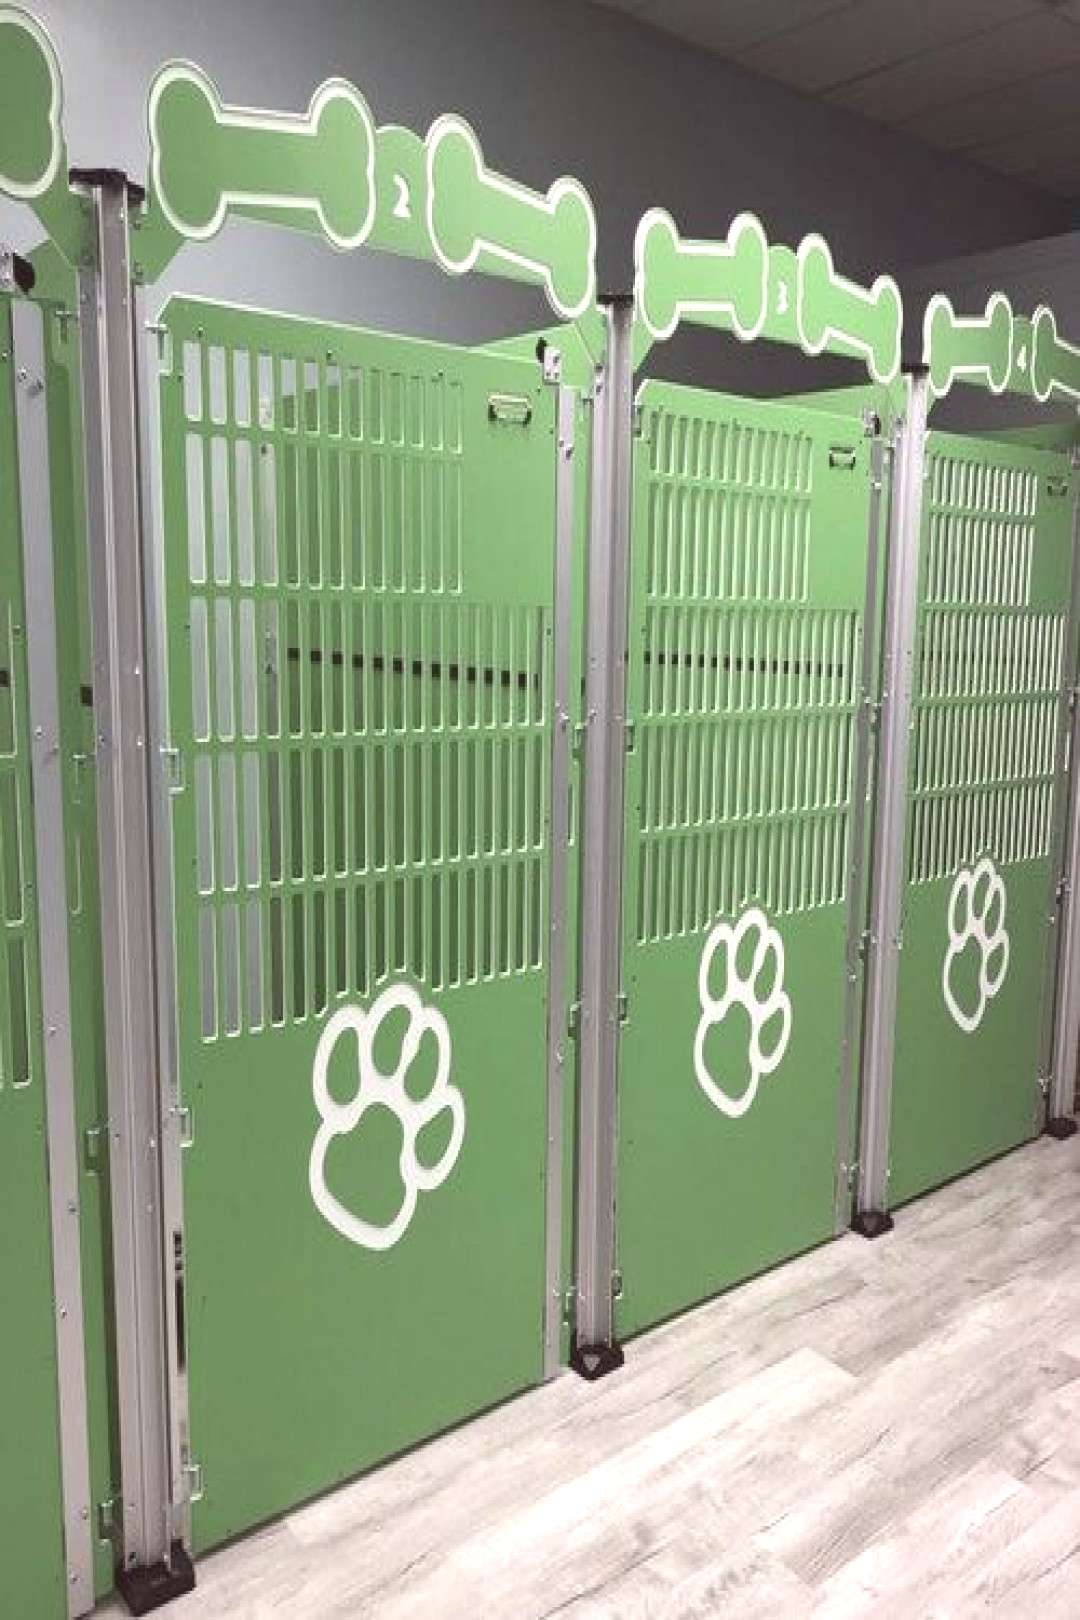 Custom Dog Kennel Gates | Commercial Kennels | Gator Gates | Gator Kennels